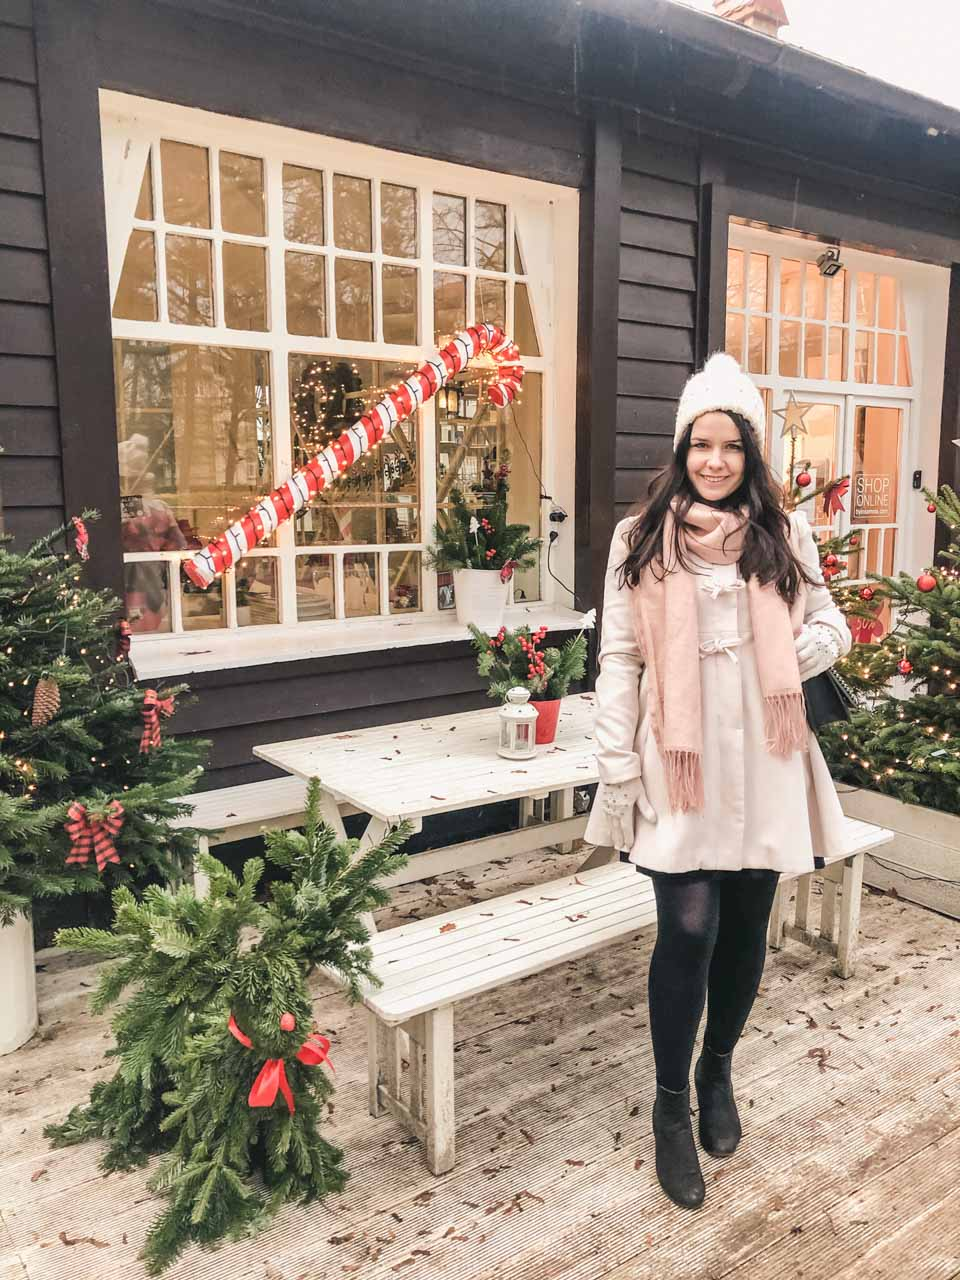 A girl in a white coat standing in front of Christmas trees and a decorative candy cane